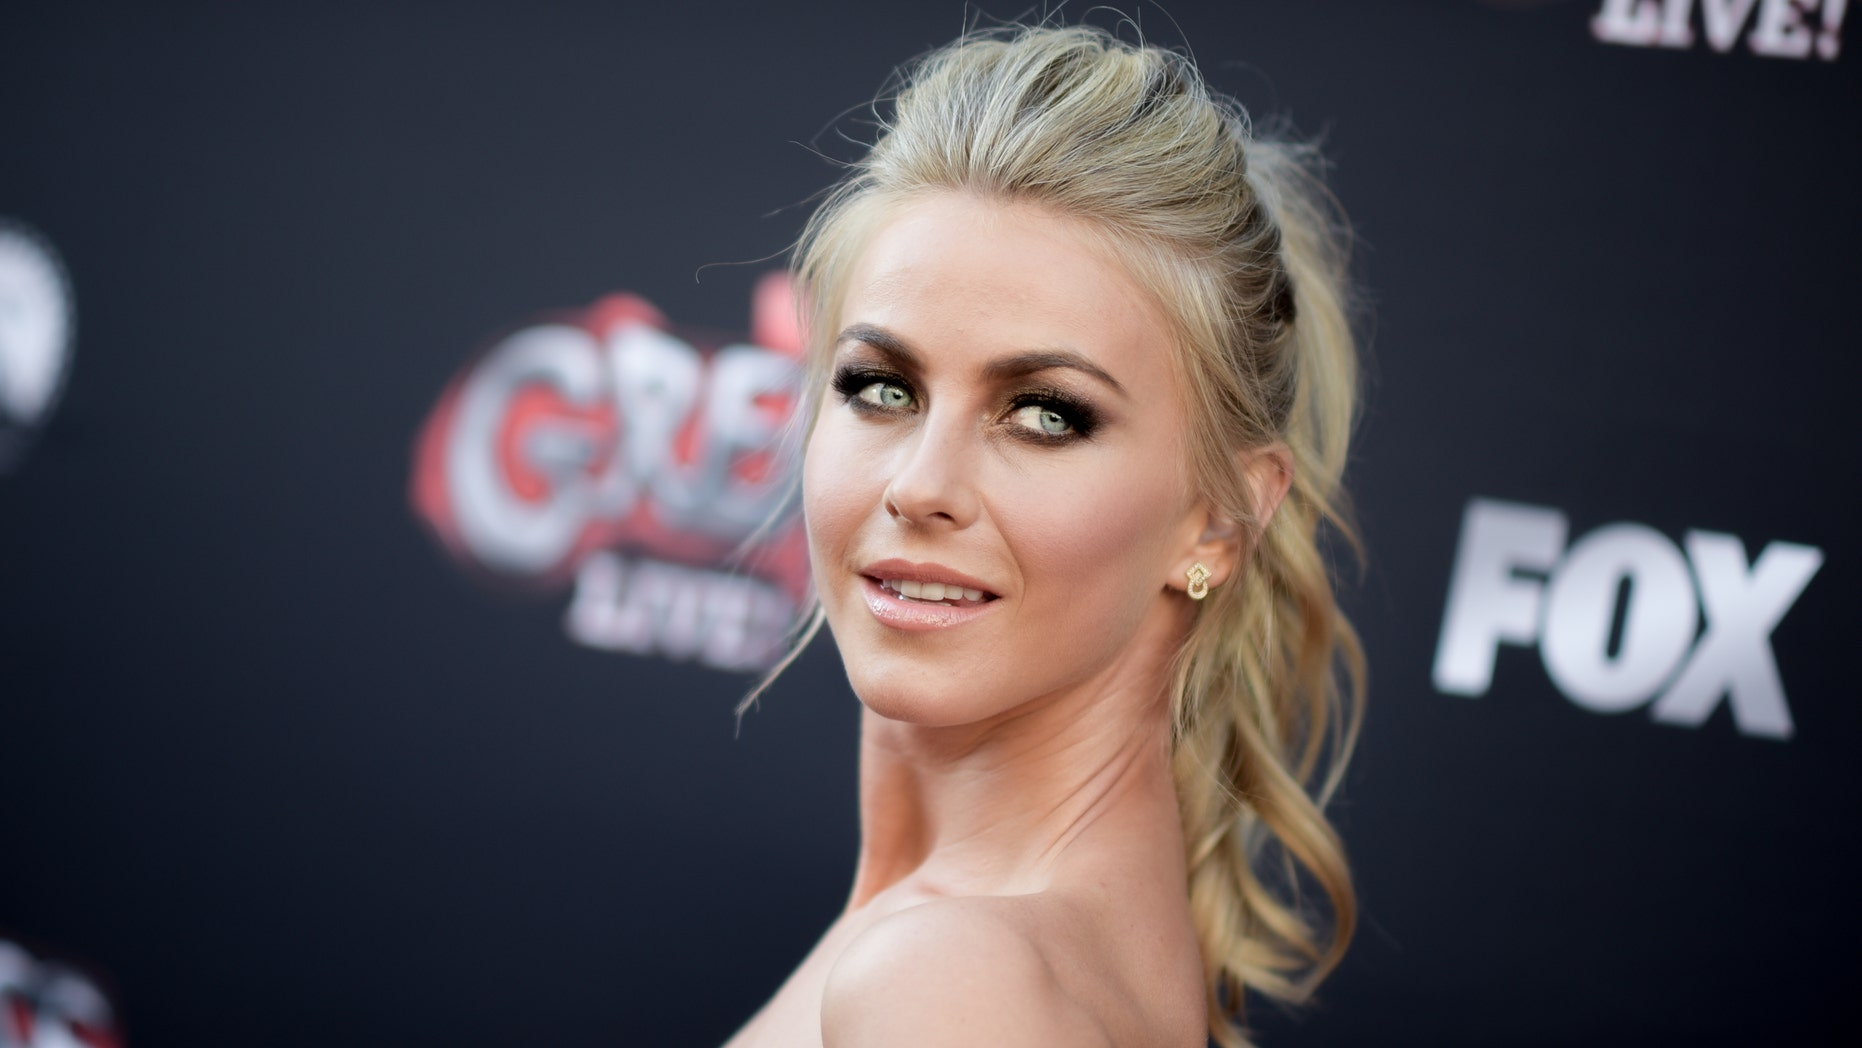 """Although the singer scored high on """"Dancing With The Stars,"""" one place she doesn't score is in the bedroom. """"I want to be with that special person,"""" Hough told CosmoGIRL!. """"I think [the choice] to have sex before marriage is an individual one, but if you're just with one person, it's only for one good reason, and [waiting to have sex] will strengthen that relationship."""""""